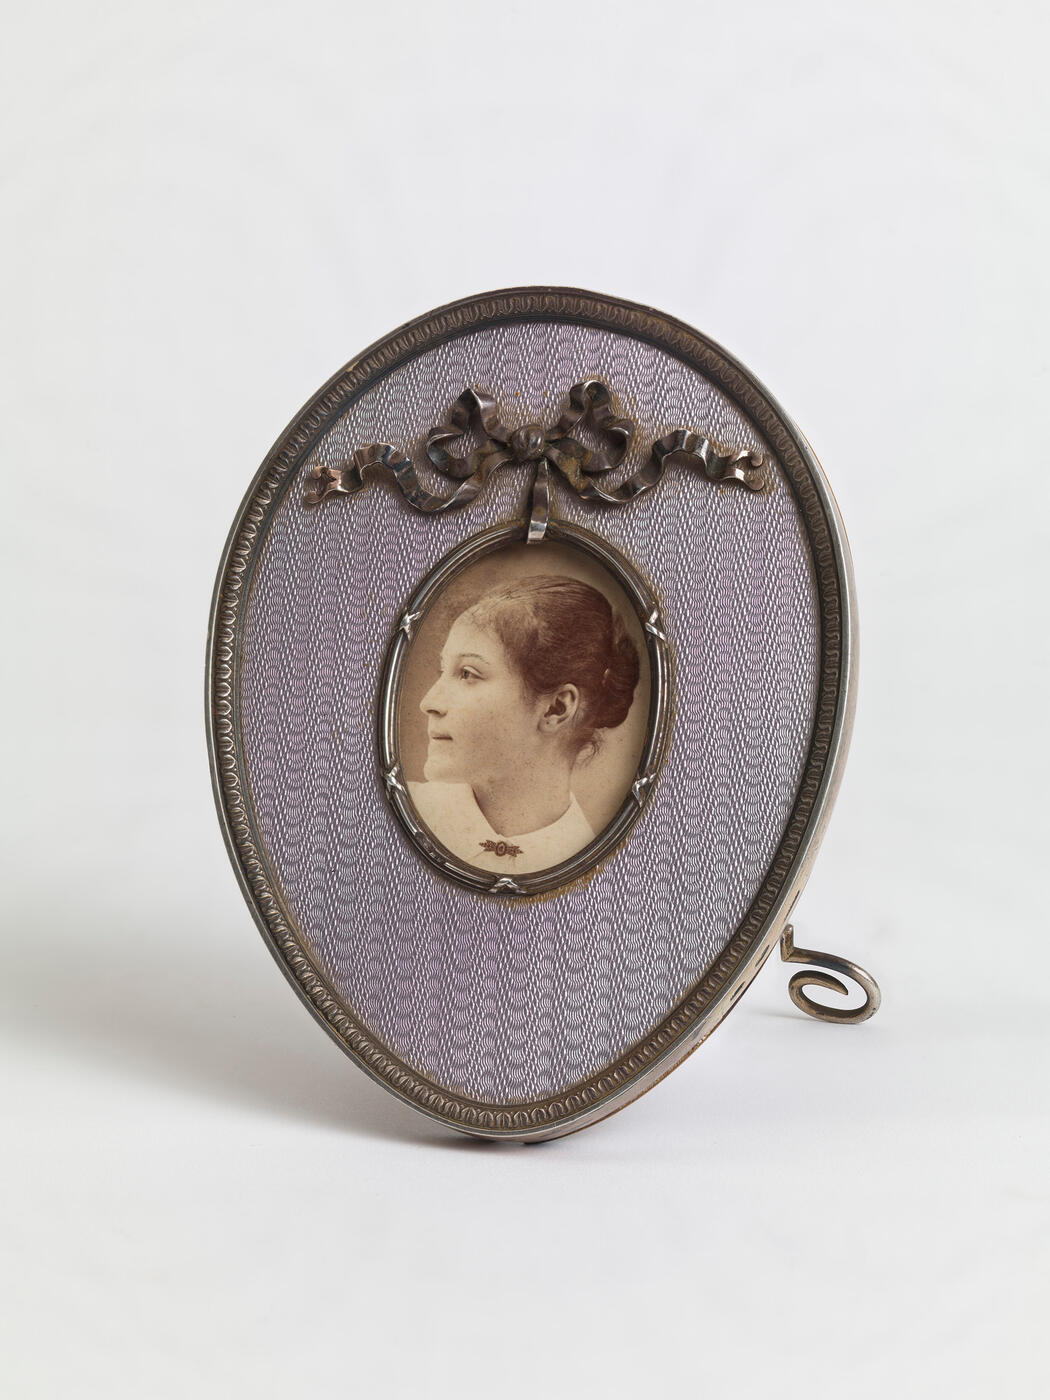 A Fabergé Silver and Guilloché Enamel Photograph Frame